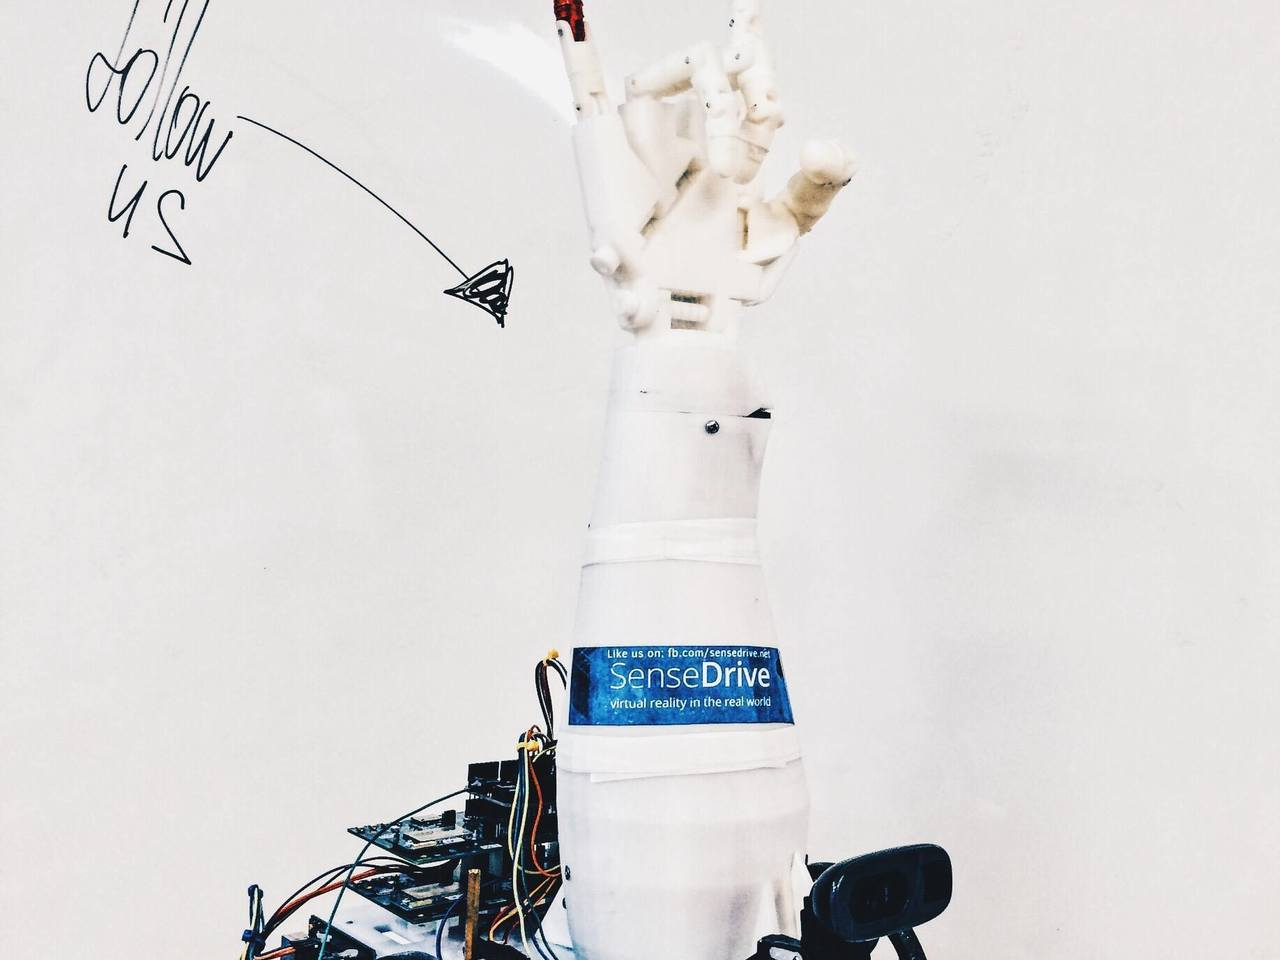 Robot-avatar SenseDrive - symbiosis of human, mechatronics and virtual reality!